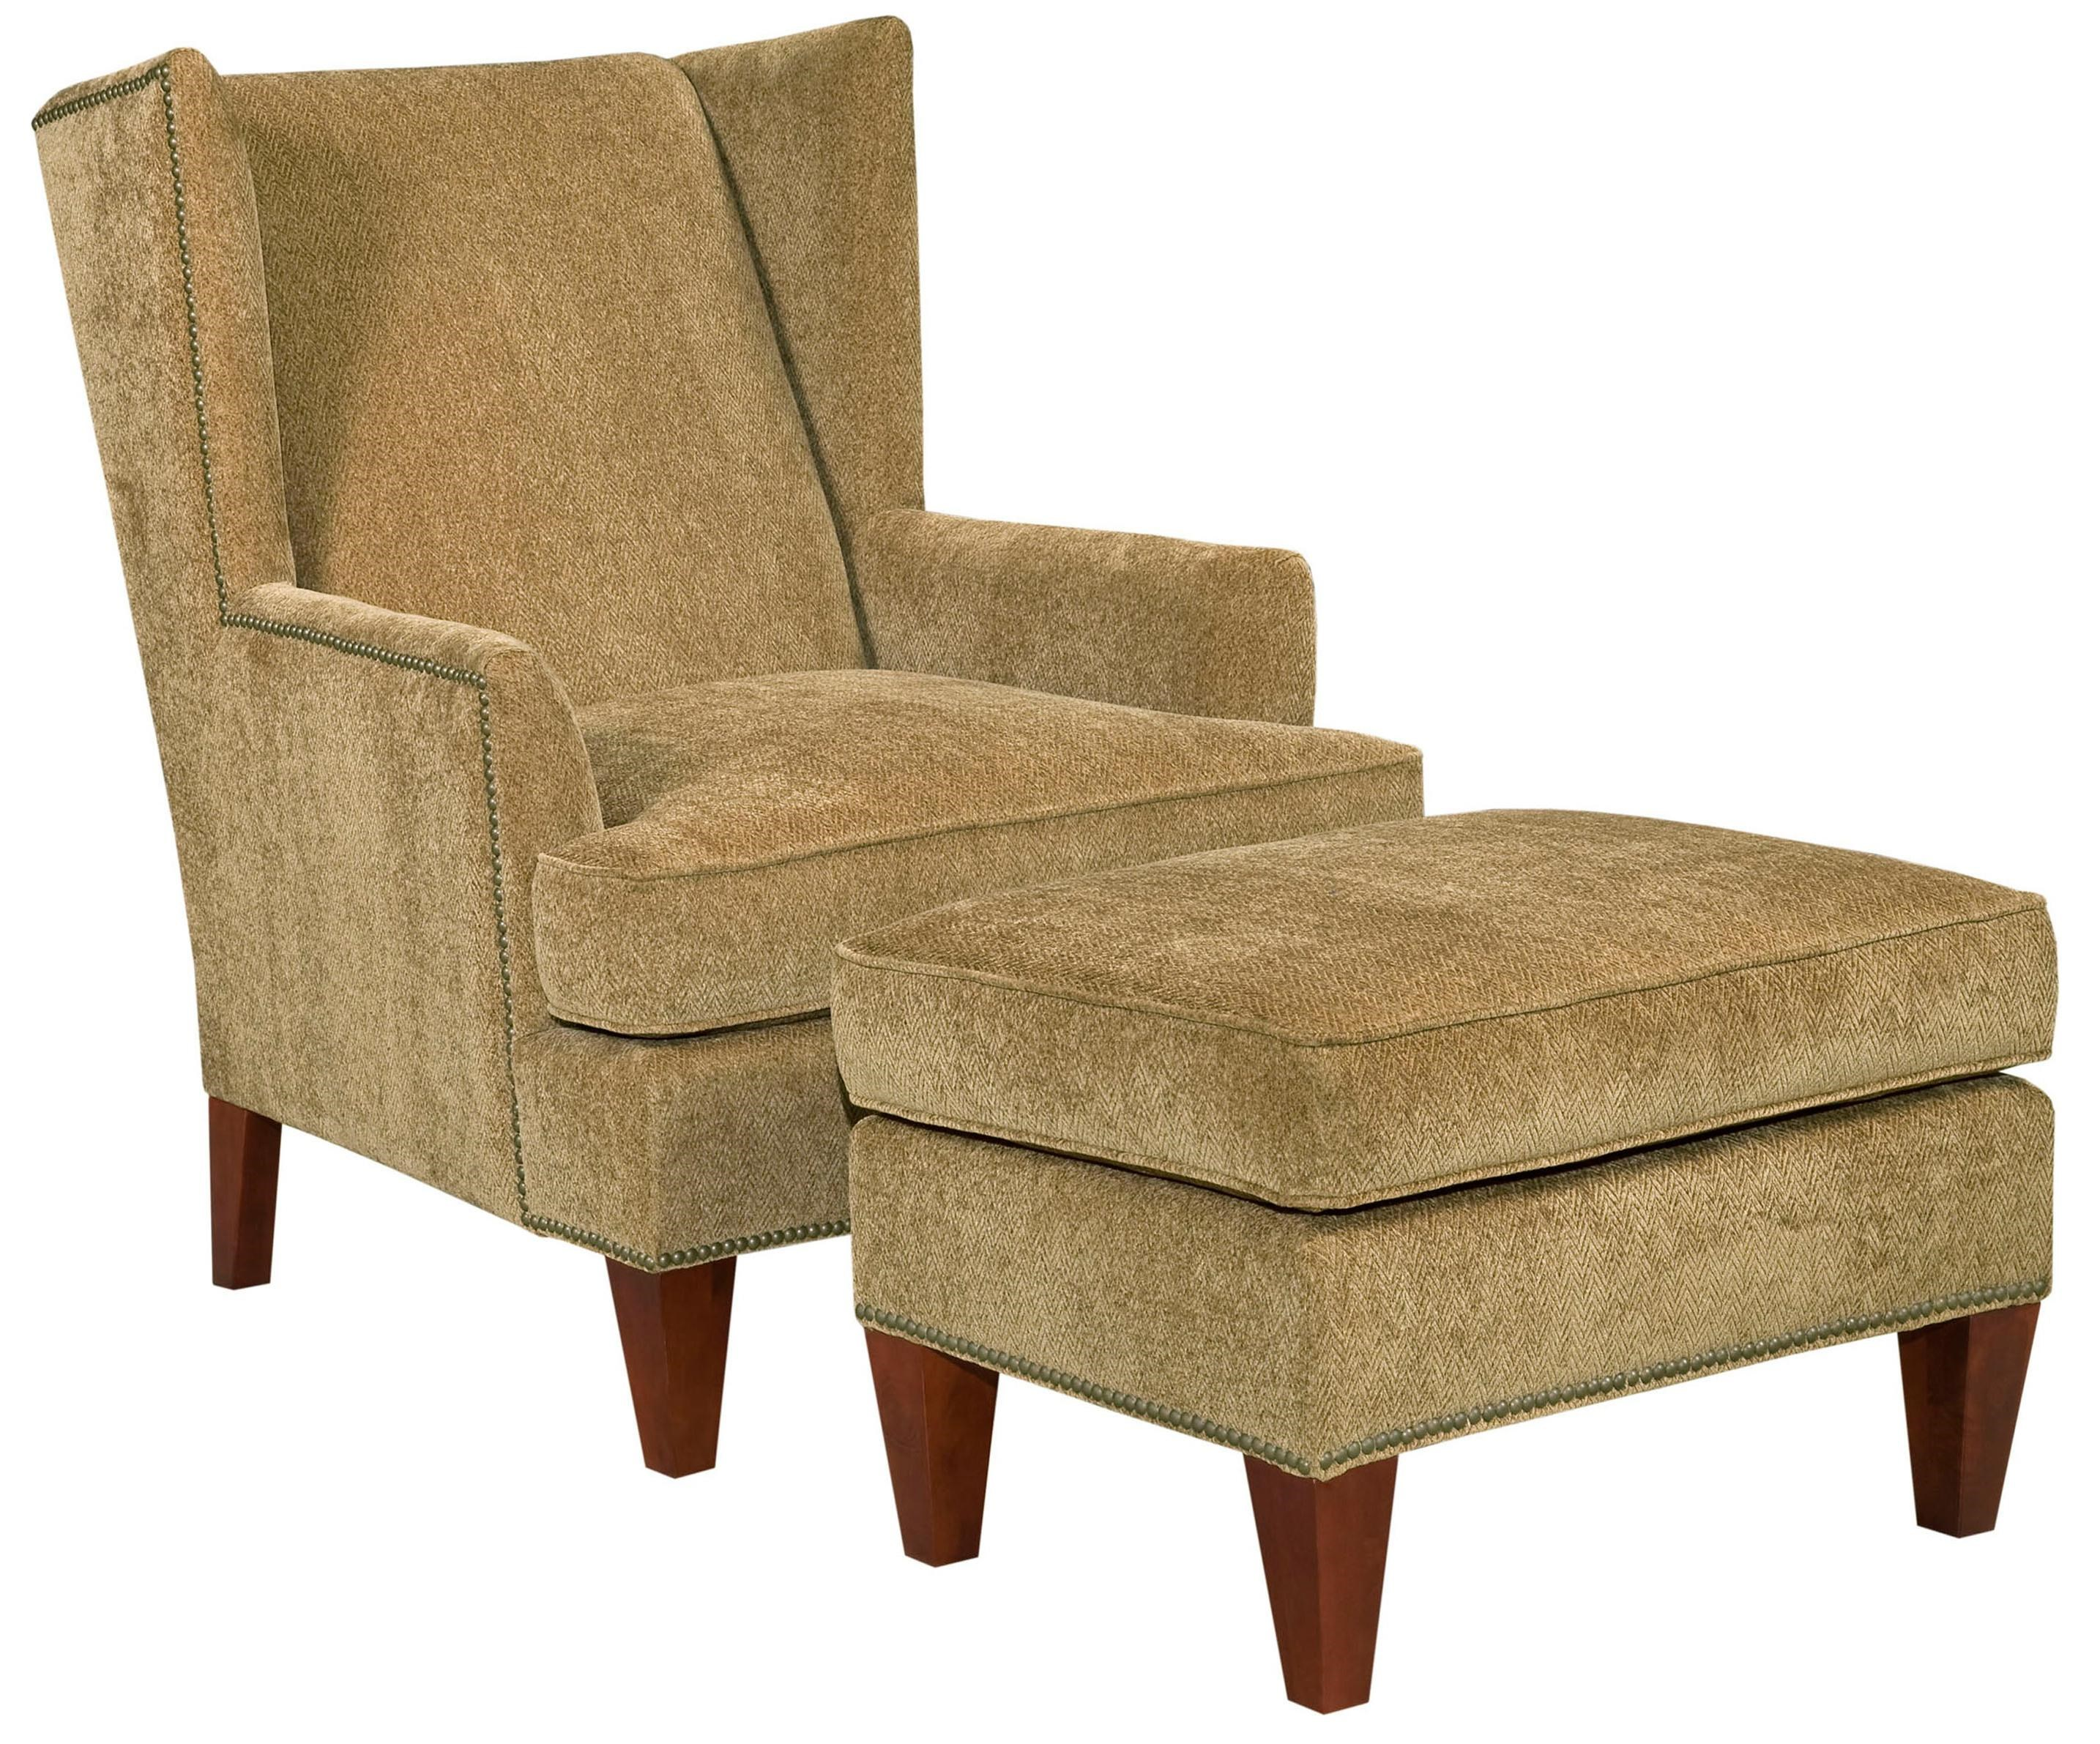 Broyhill Furniture Accent Chairs And Ottomans Chair And